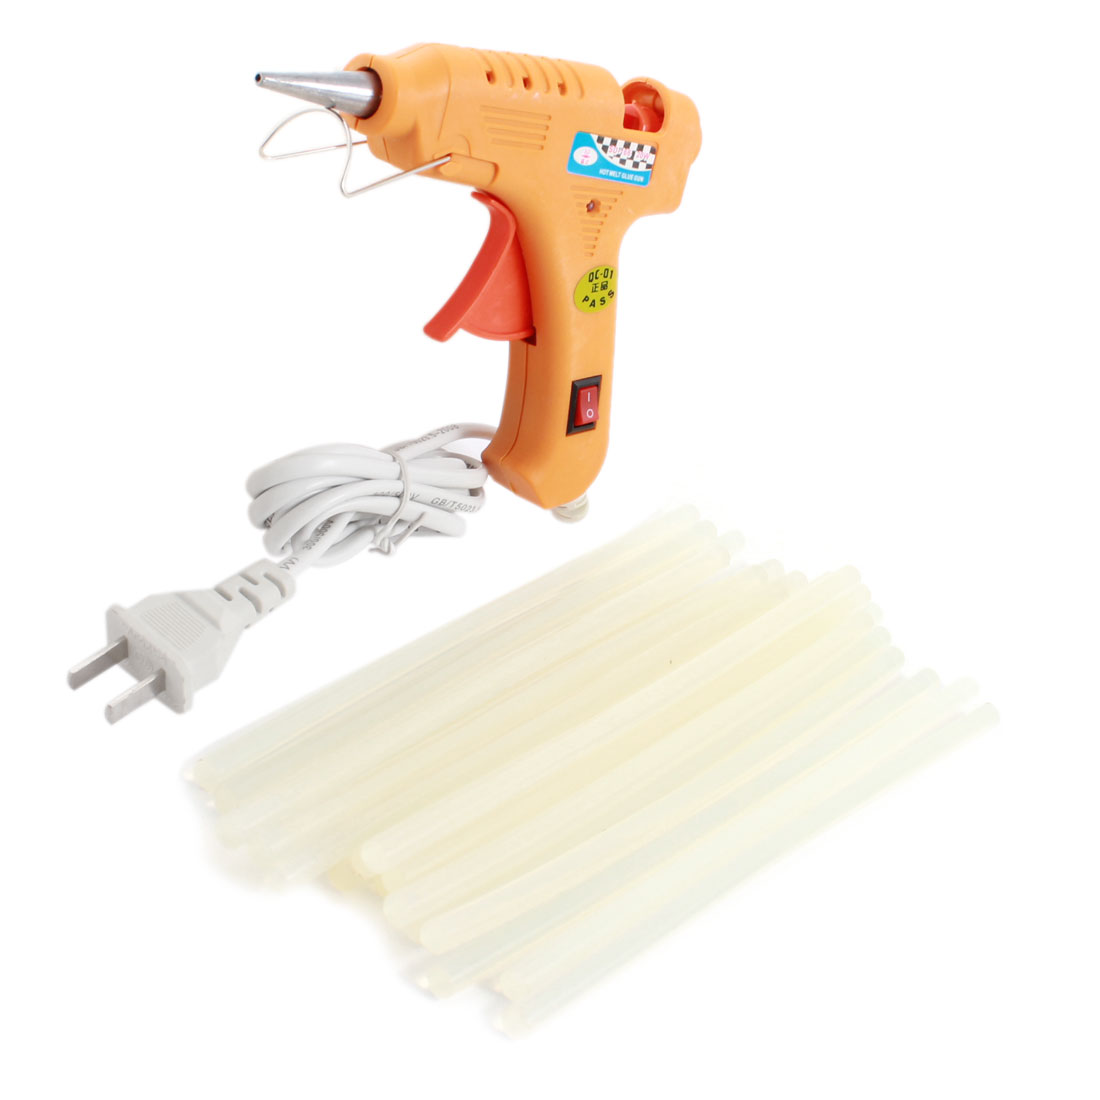 AC100V-240V US Plug Plastic Shell Arts Craft Crafting 20W Yellow Glue Gun + 20Pcs 7x200mm Hot Melt Adhesive Sticks